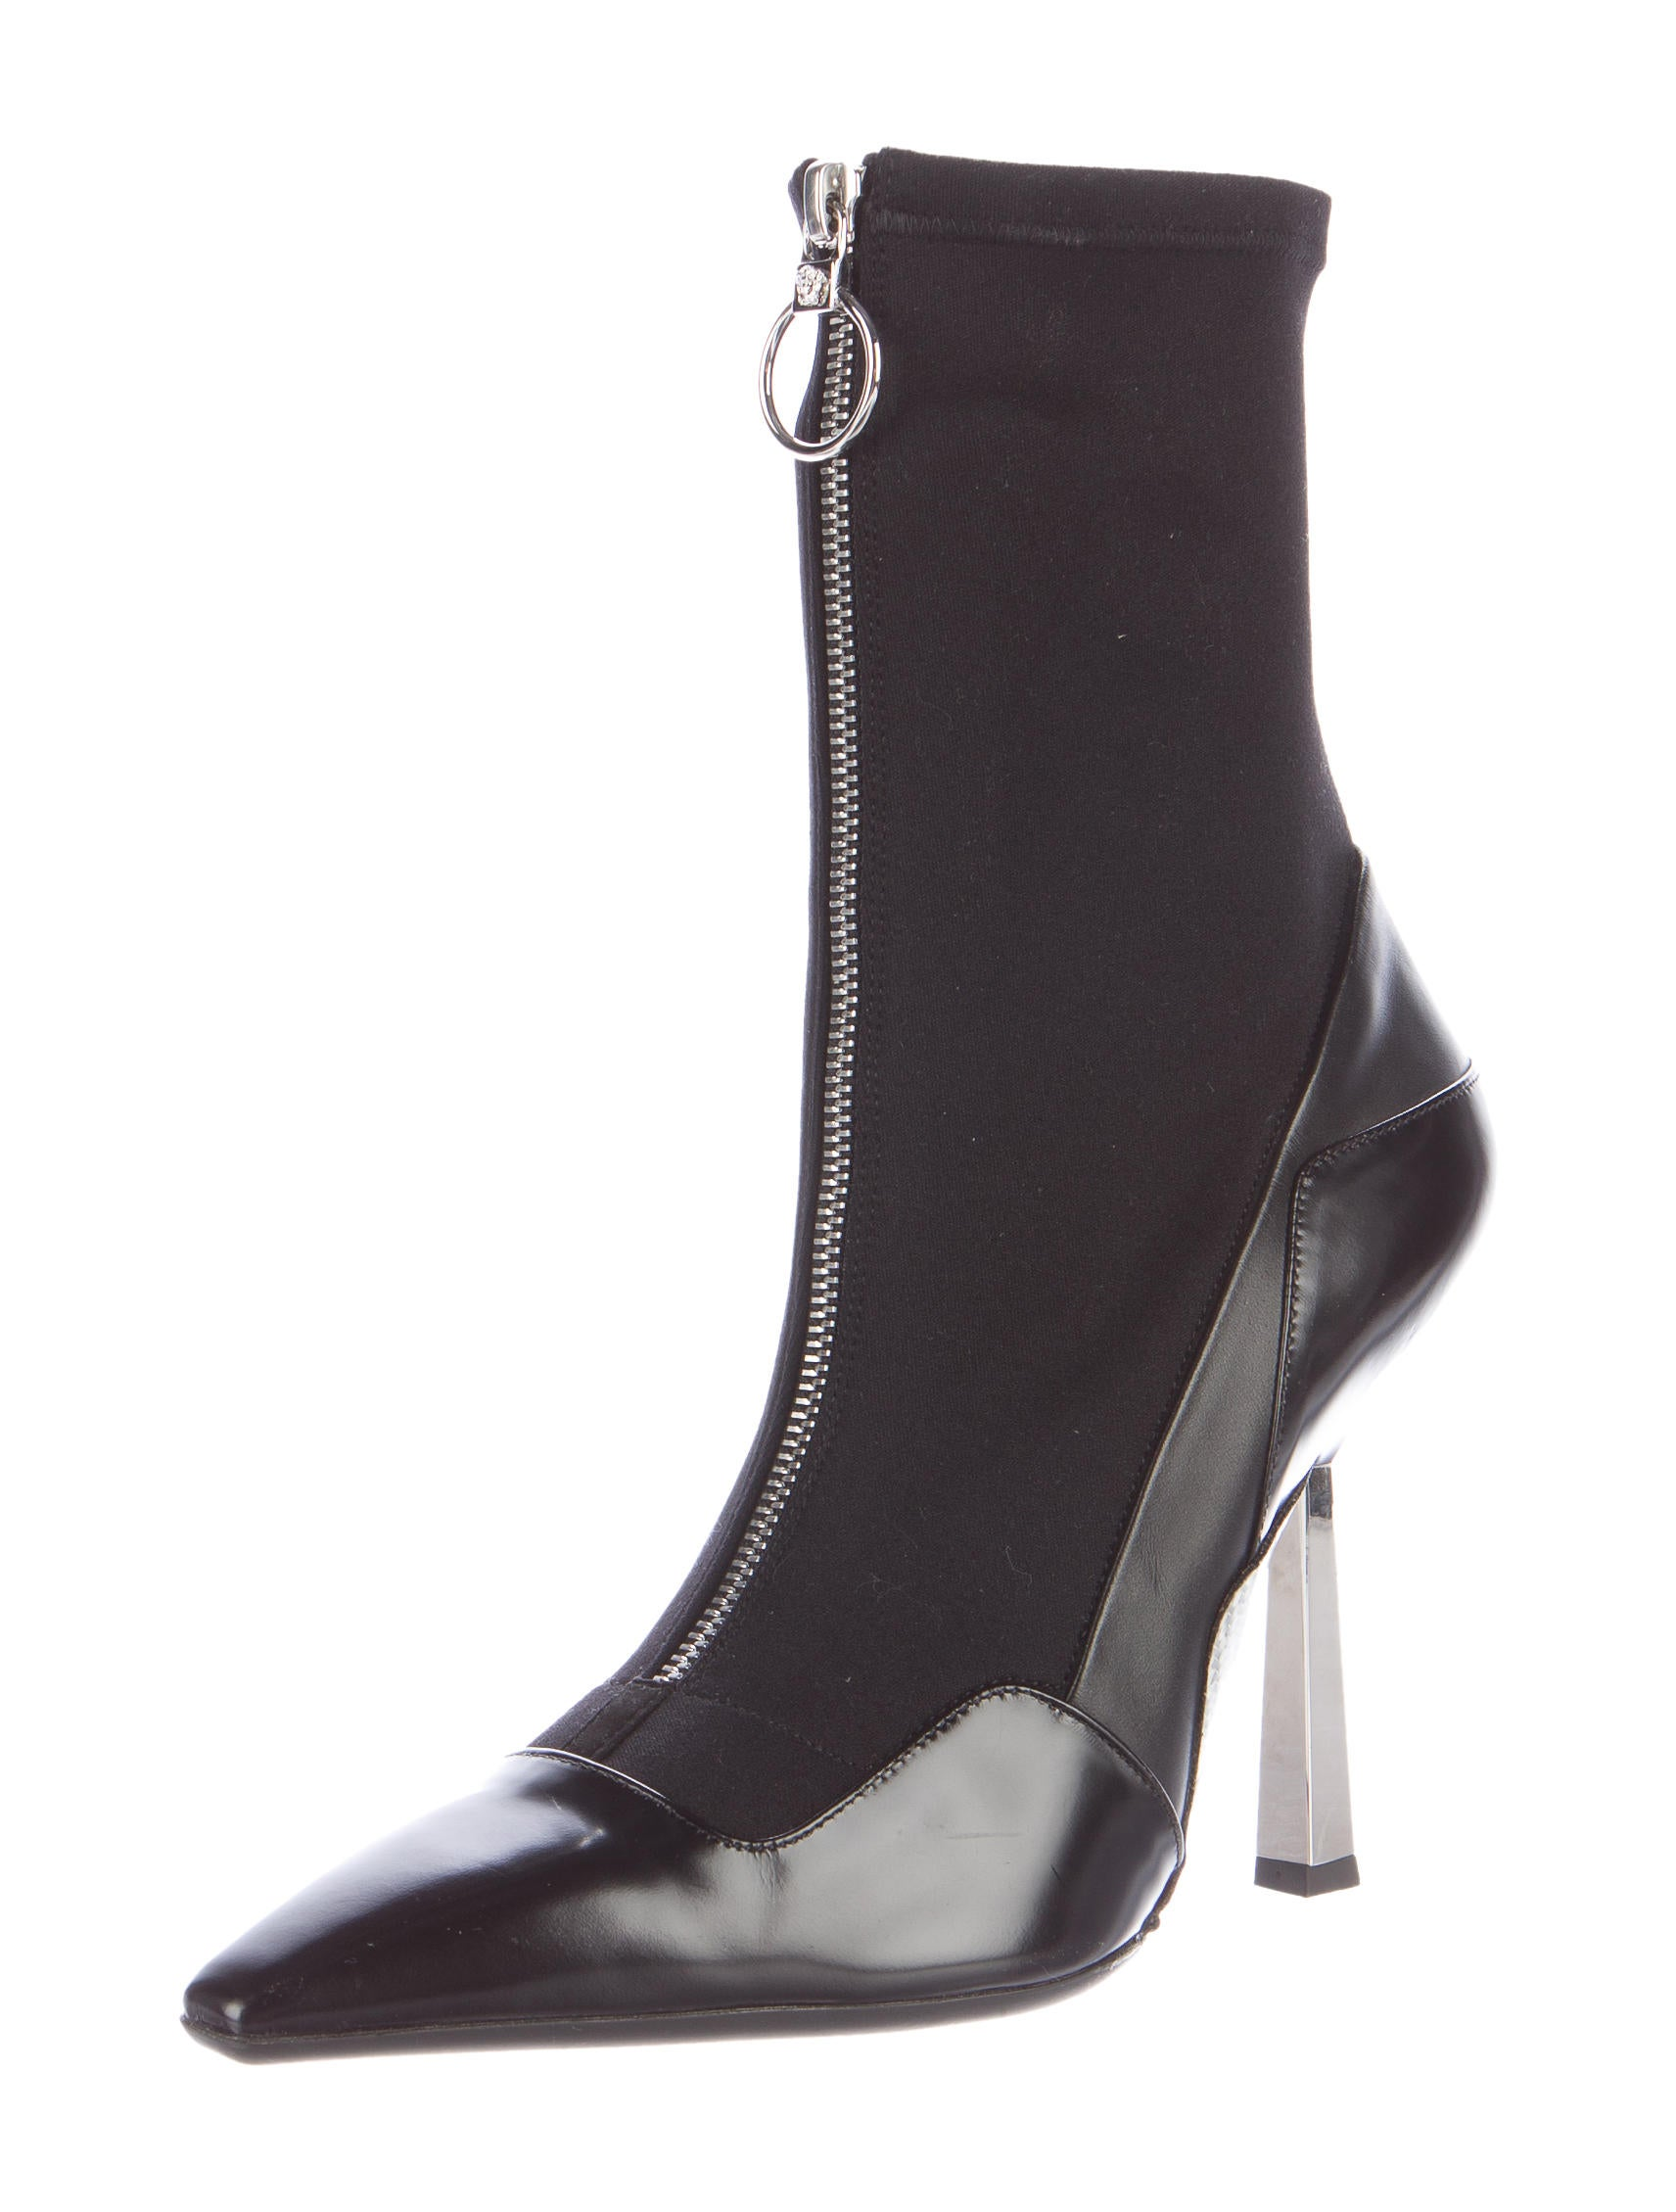 versace layered effect runway ankle boots shoes